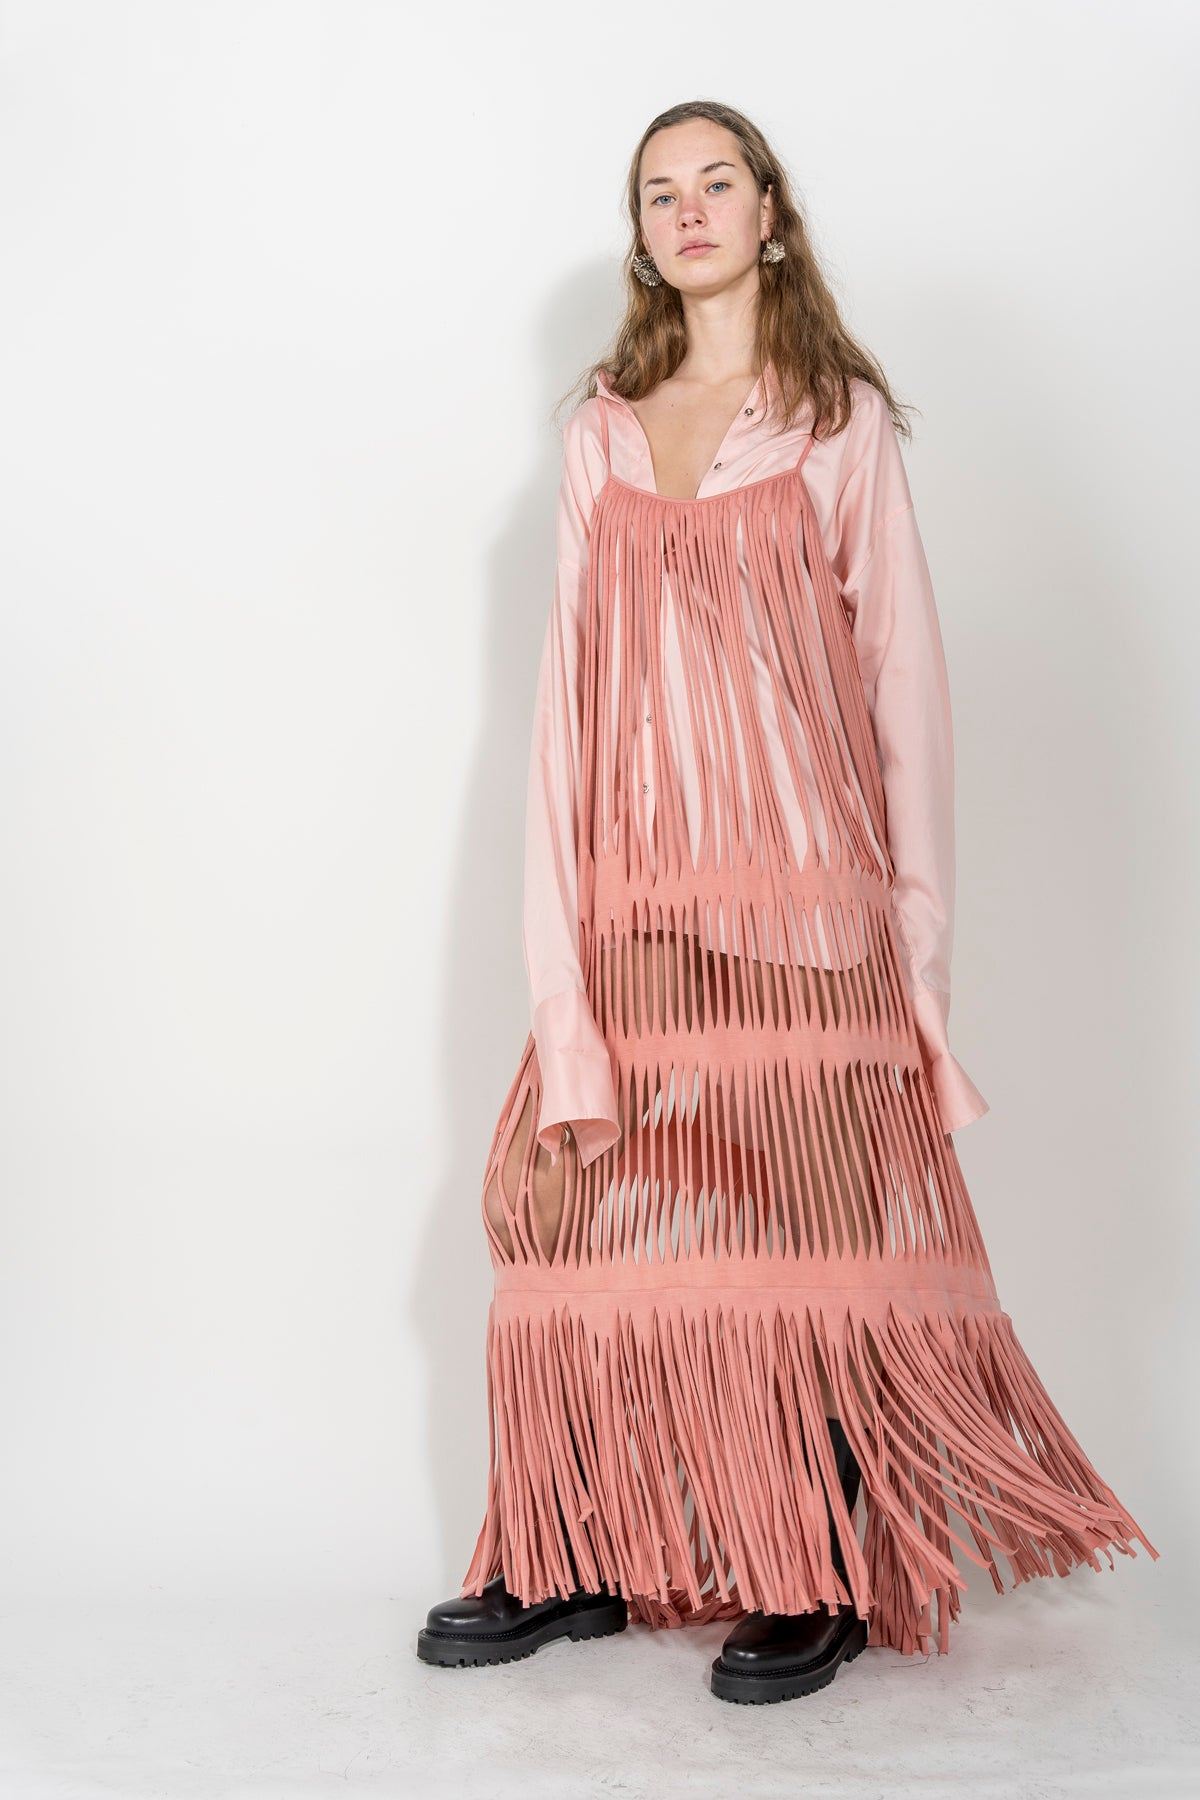 PINK NAKED FRINGE DRESS MARQUES ALMEIDA